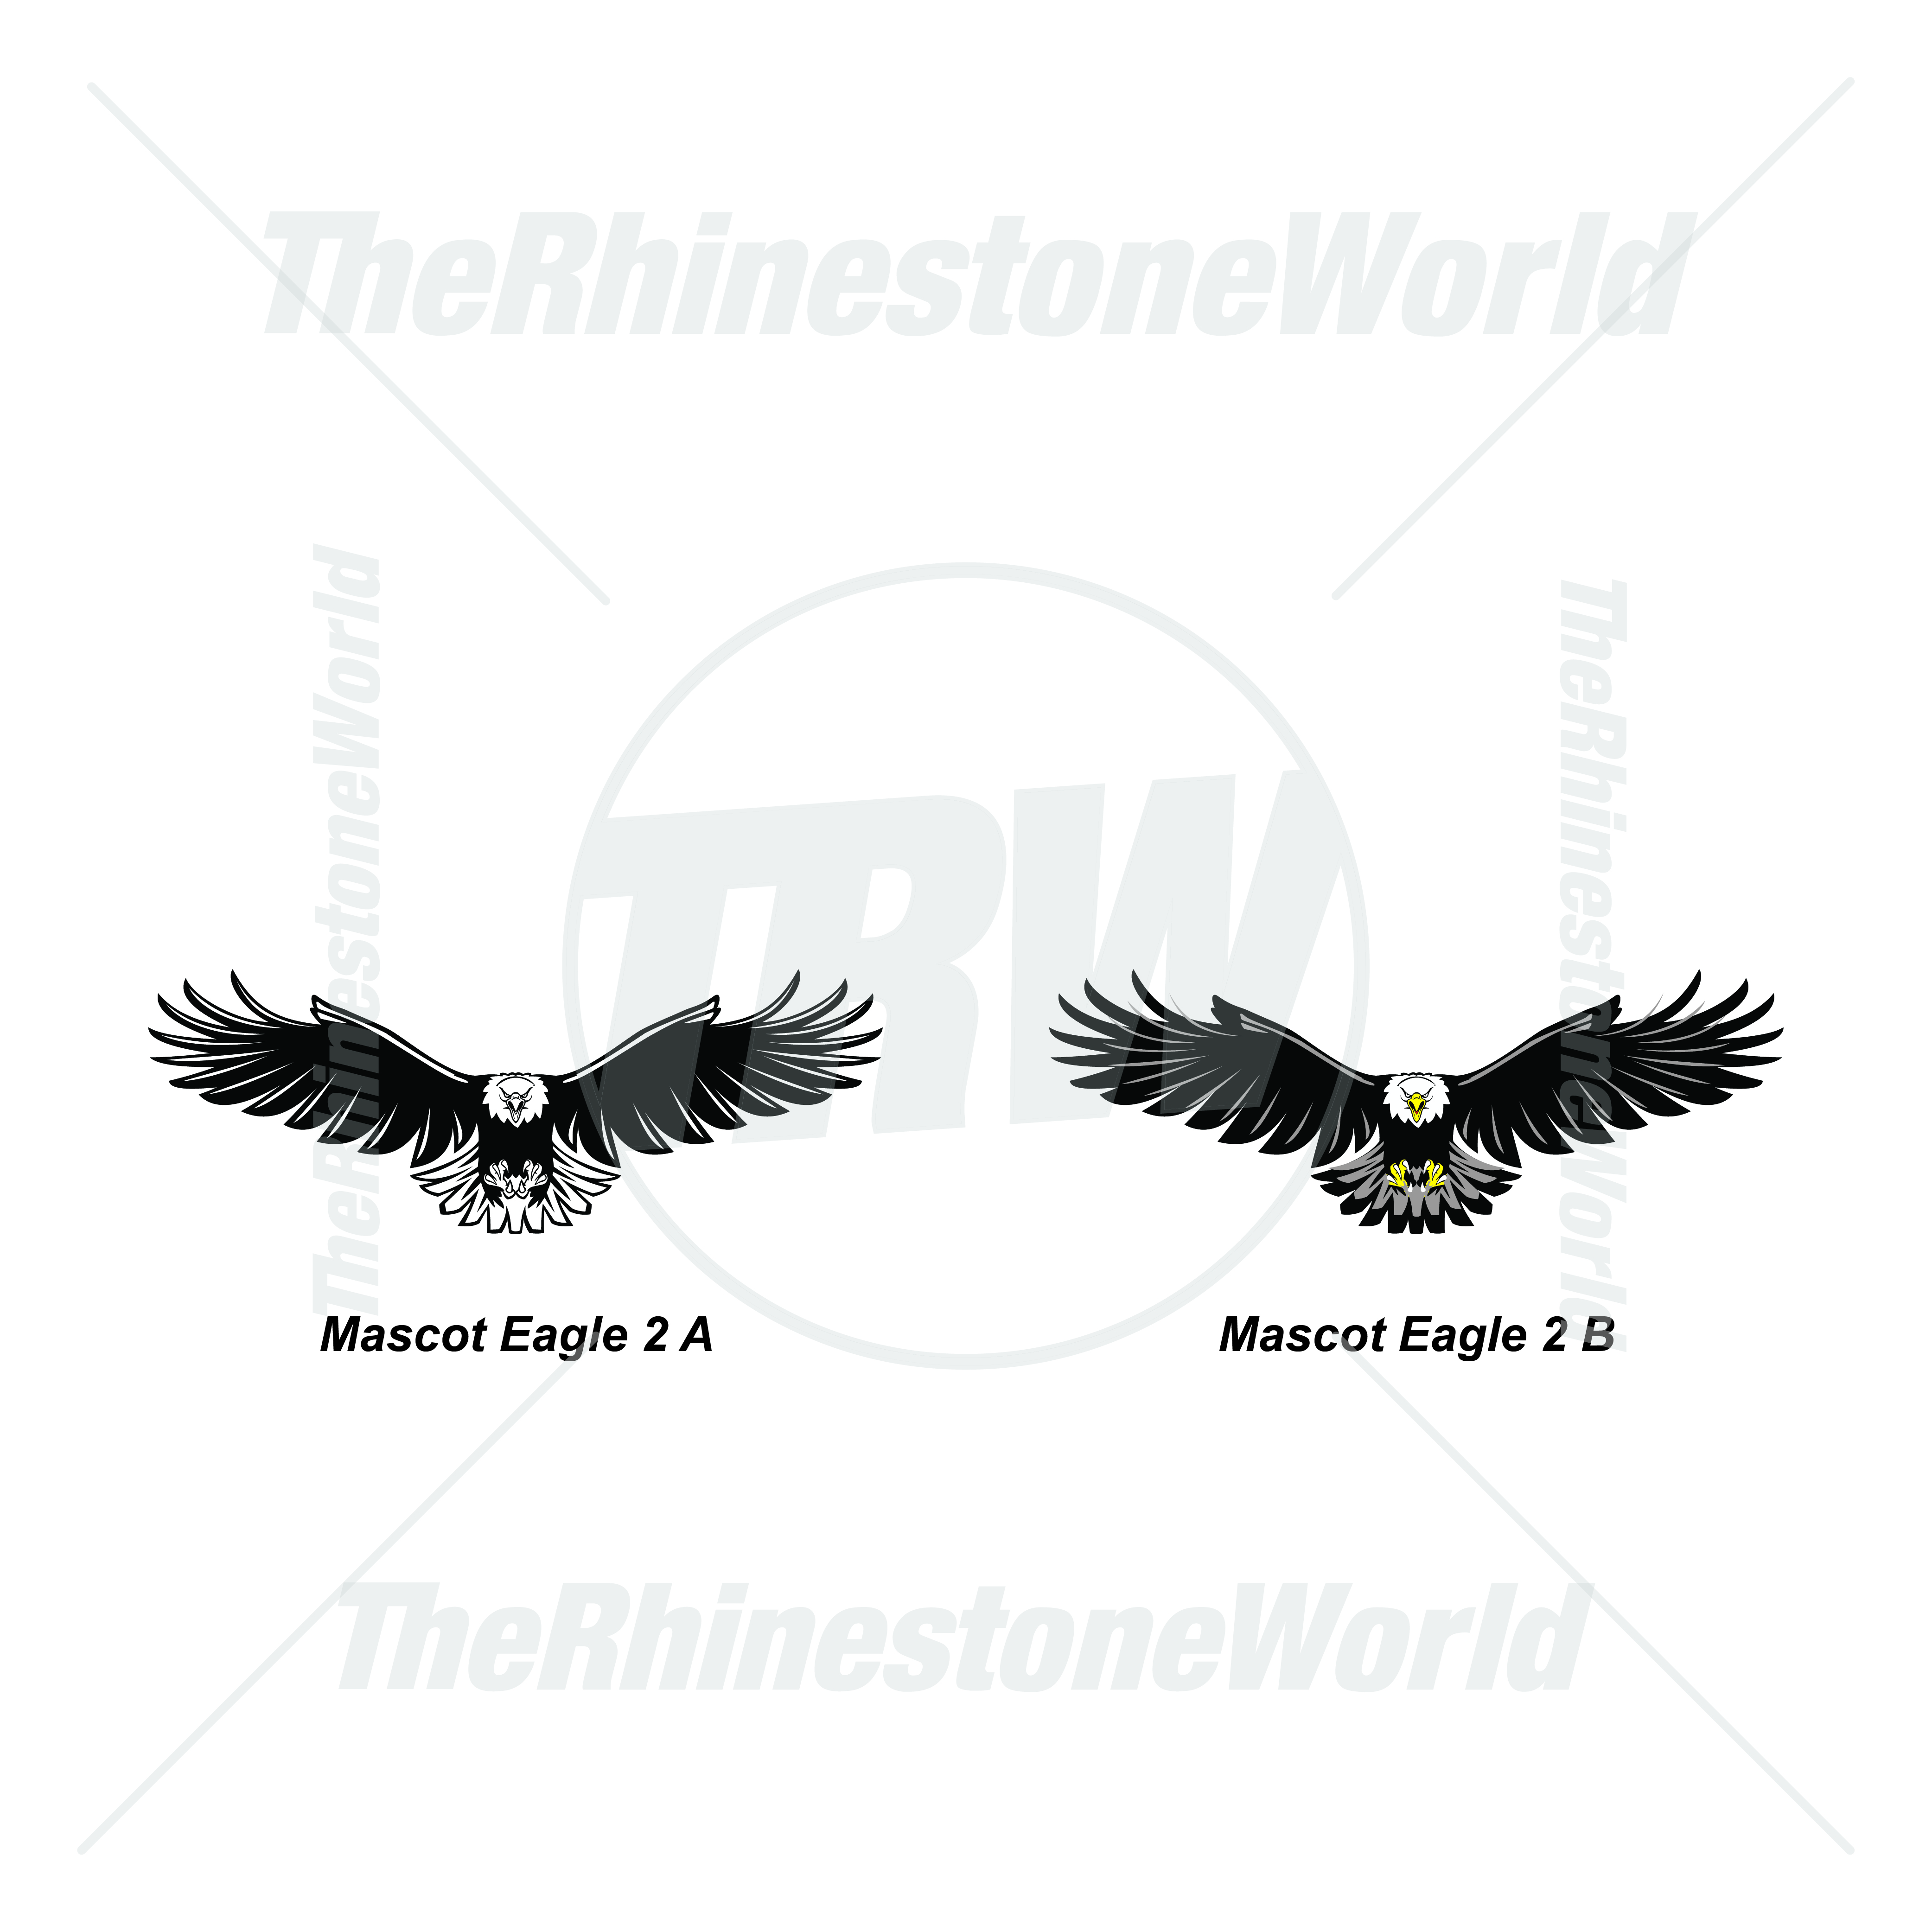 TRW Mascot Eagle 2 - Download